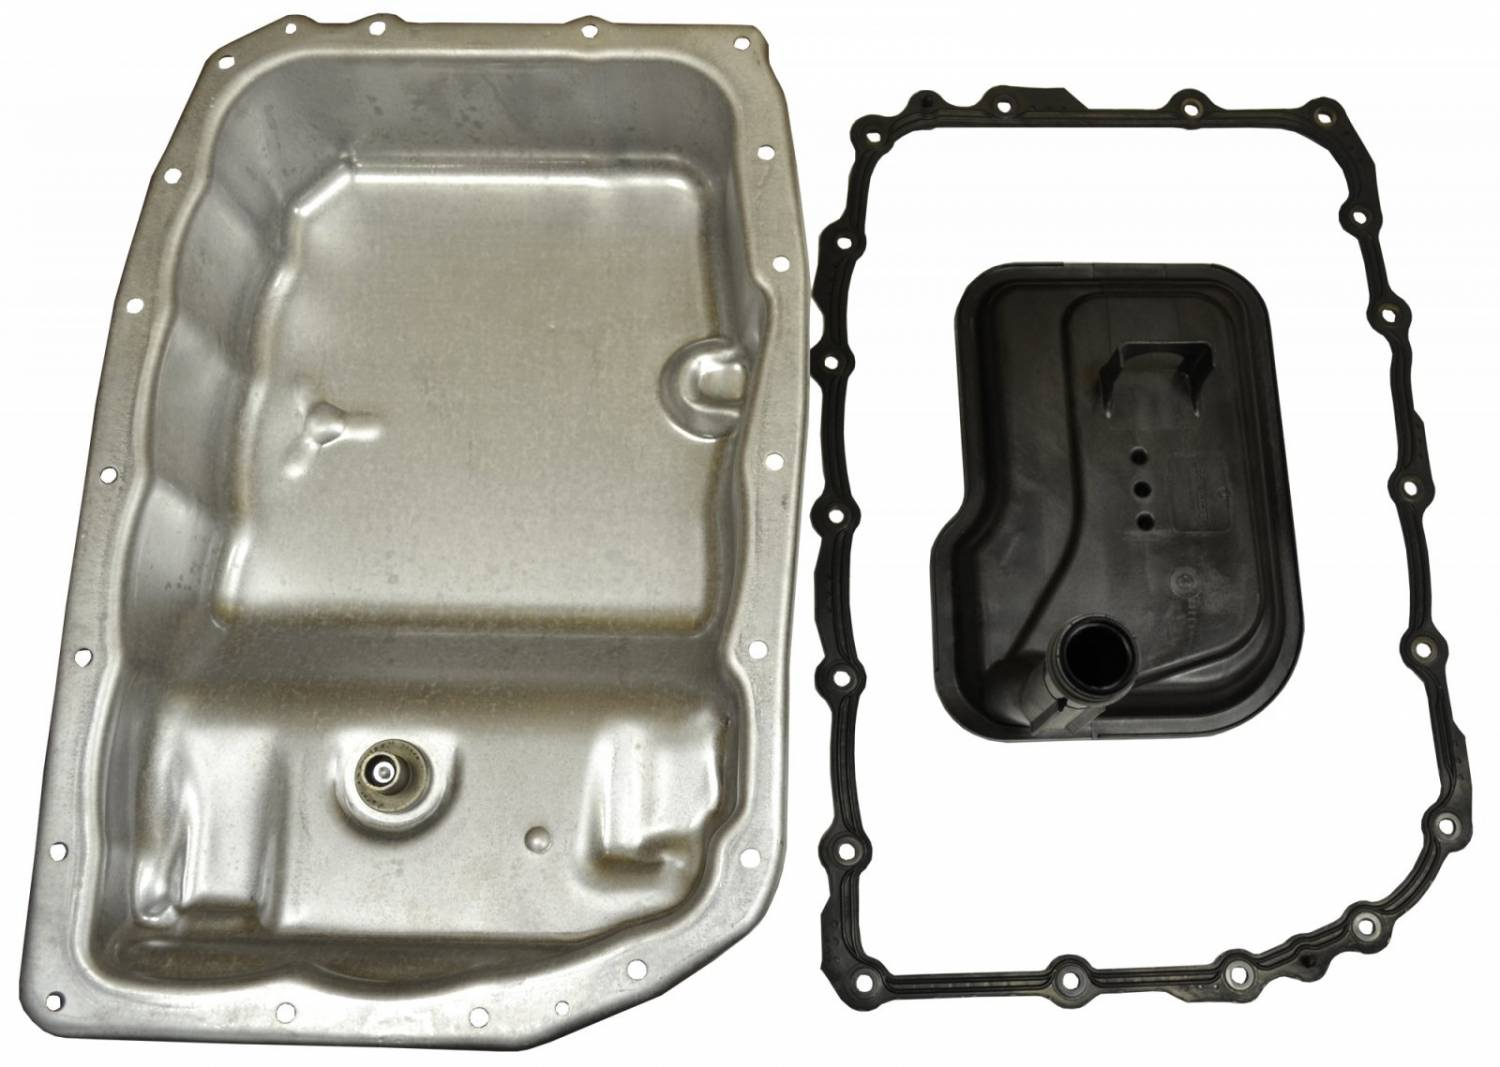 GMP-24250062 - Camaro Transmission Pan Kit with Wide Mouth